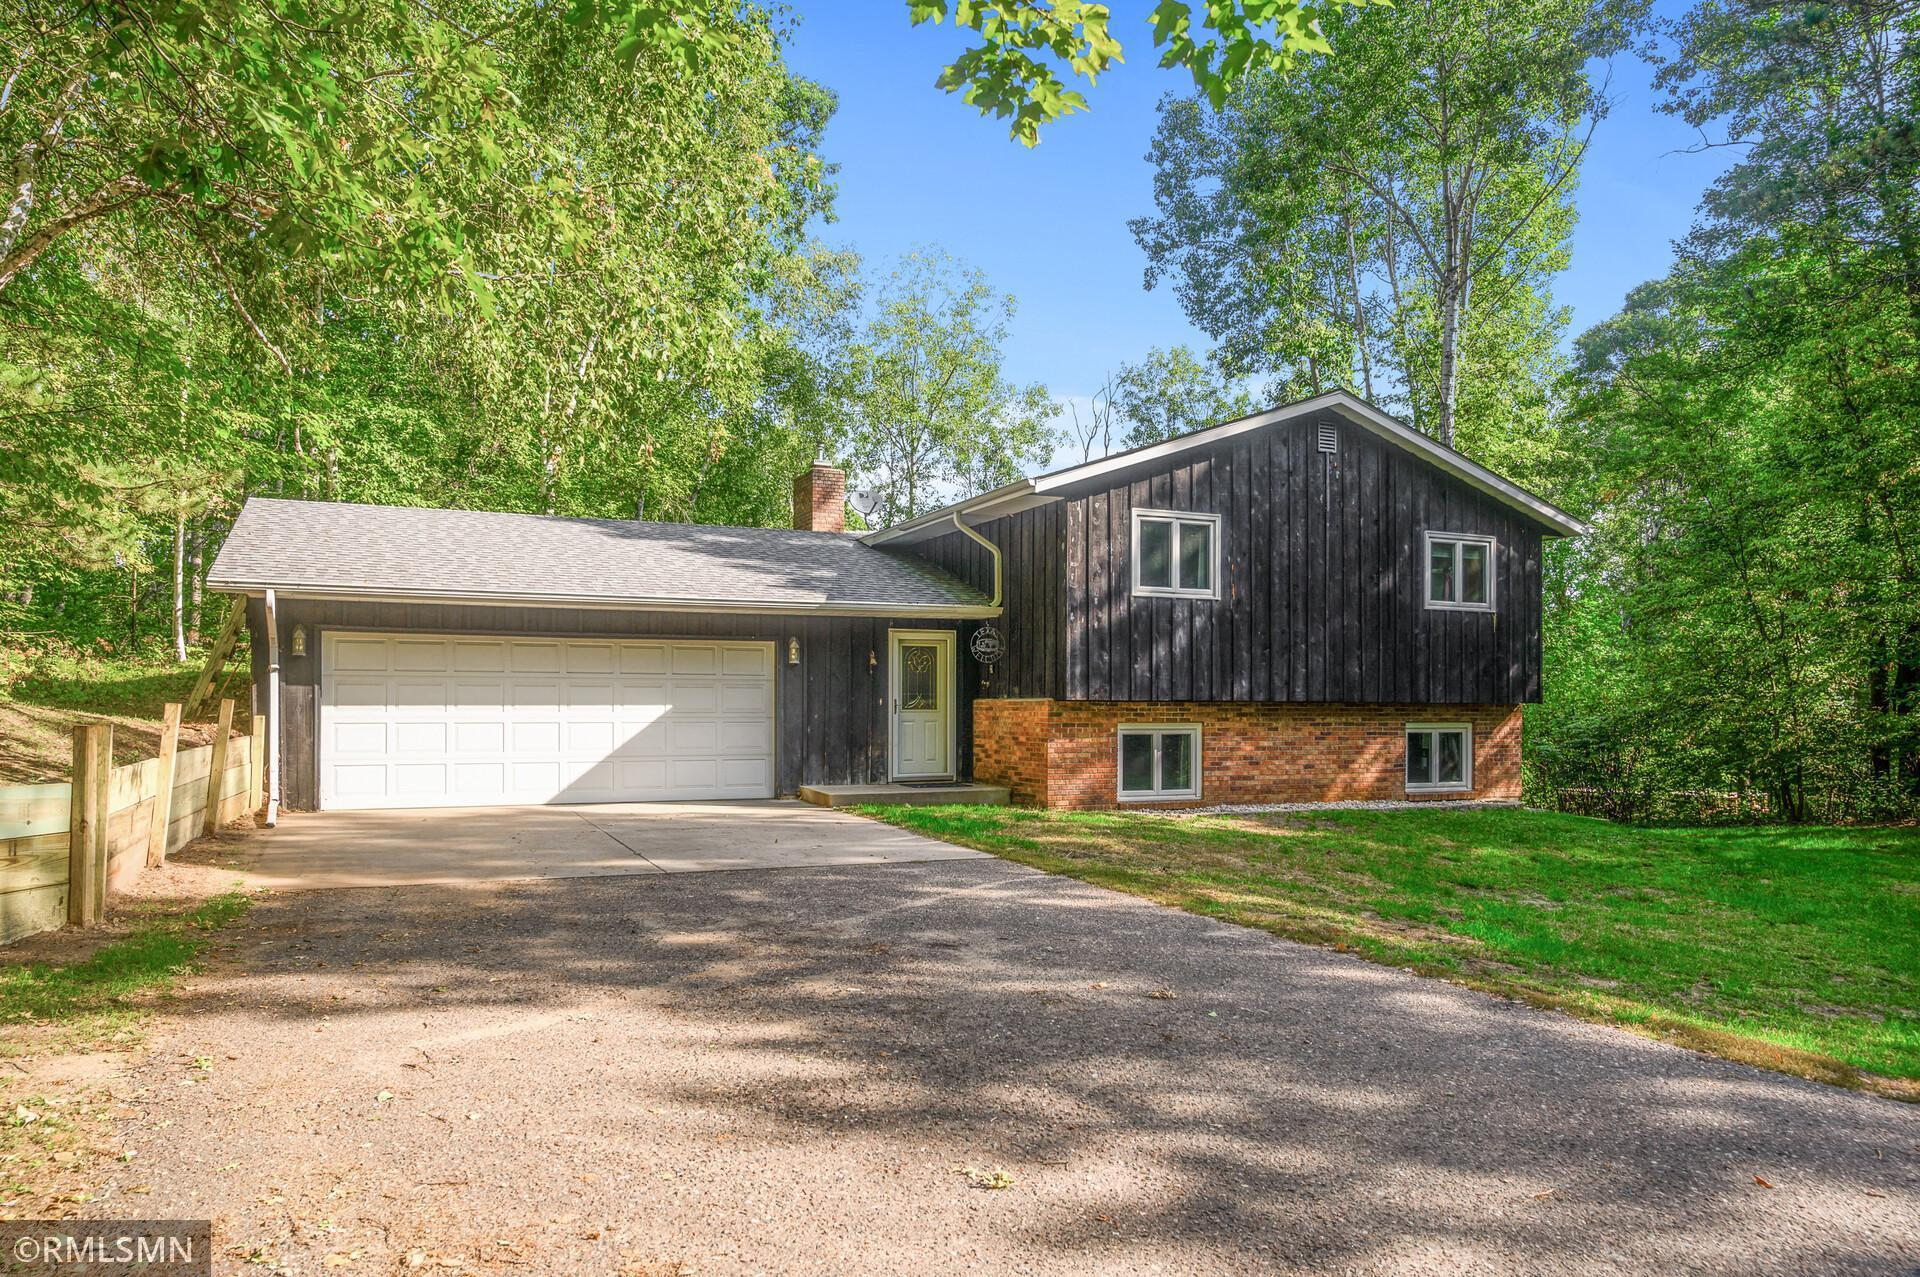 Peacefully located 4 bed 2 bath home on almost an acre lot. This home centrally located has a large garage, huge 3 season porch, two fire places.